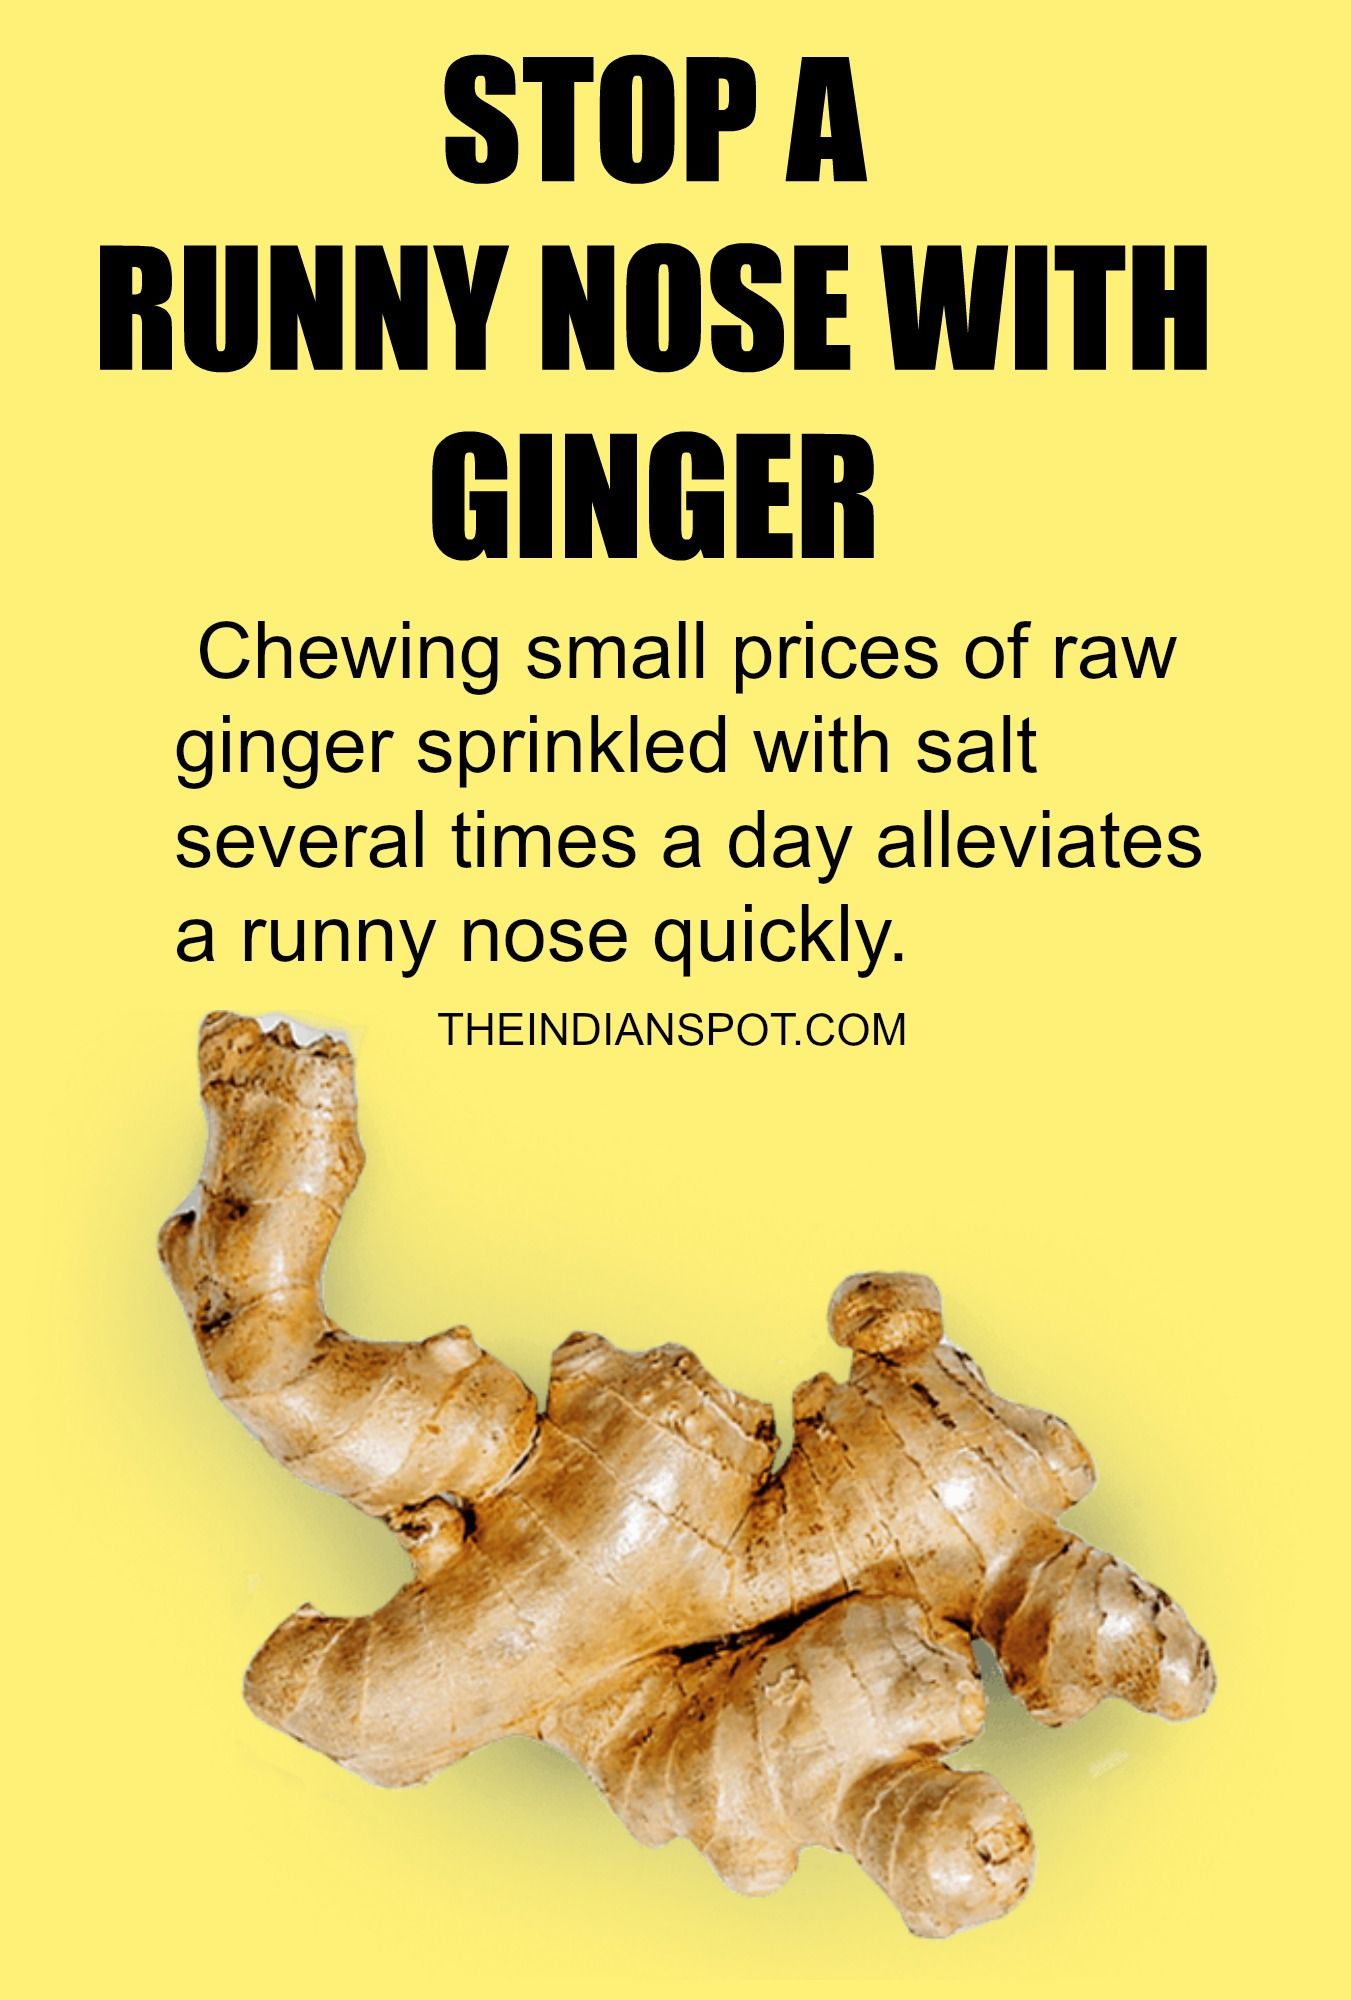 HOW TO STOP A RUNNY NOSE WITH HOME REMEDIES